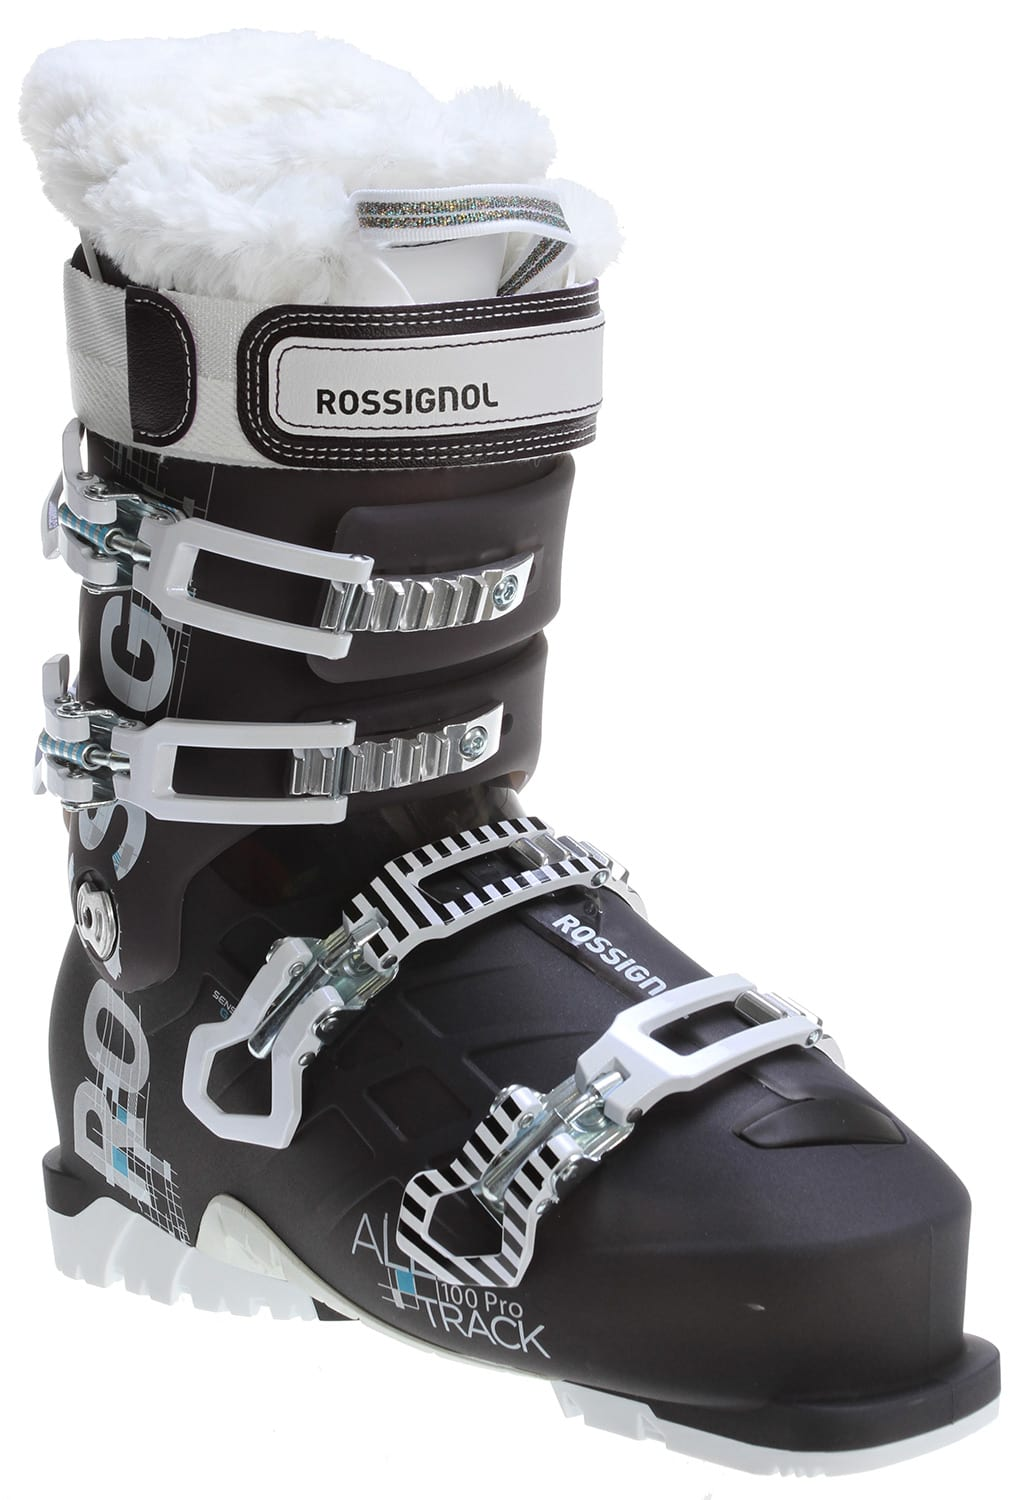 how to choose rossingnol ski boots